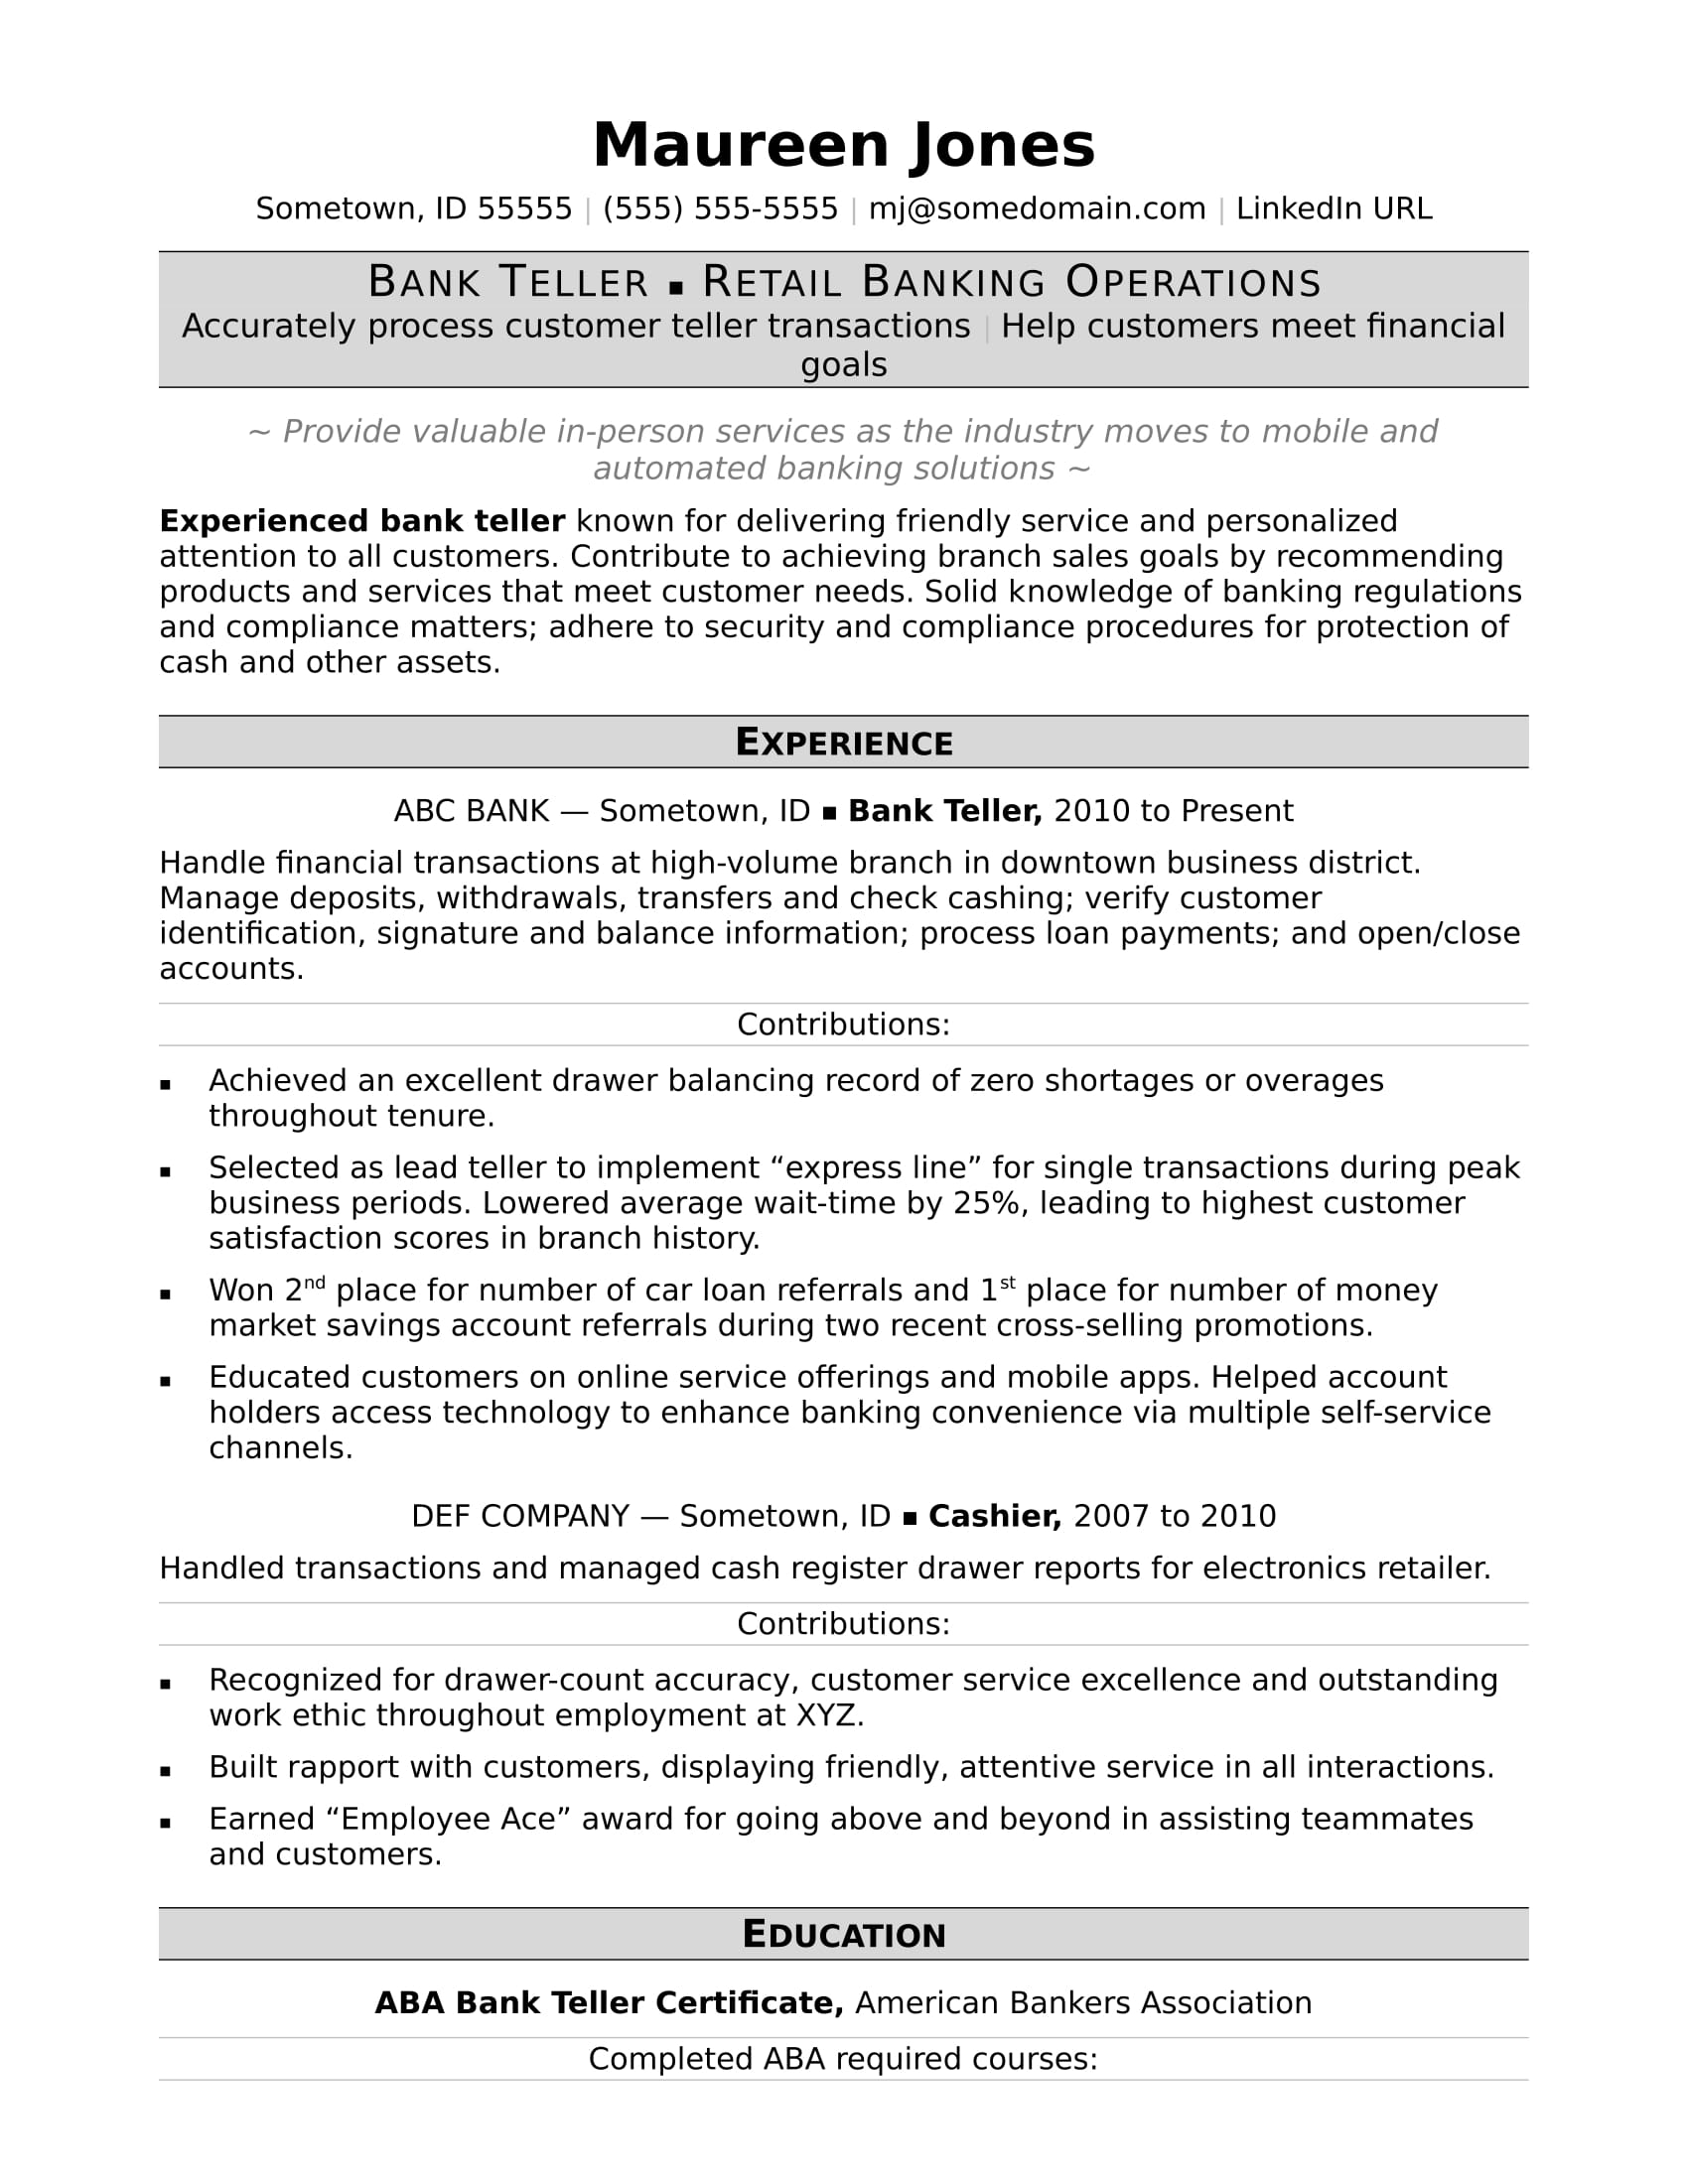 Bank teller resume sample monster bank teller resume sample yelopaper Images